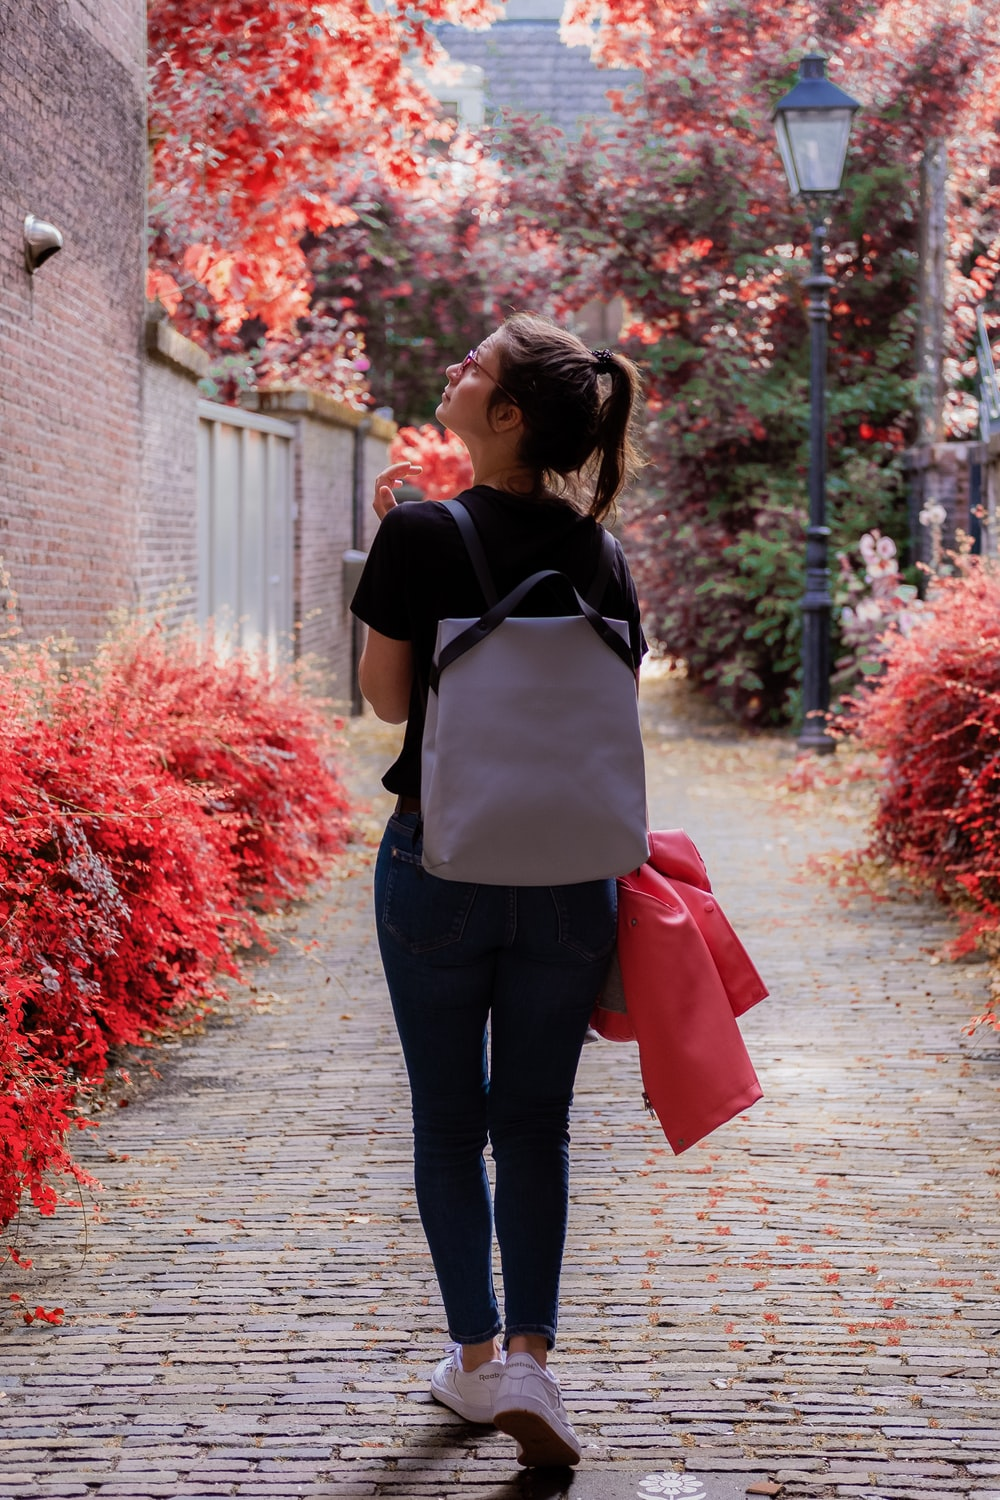 woman wearing black shirt and leggings carrying backpack